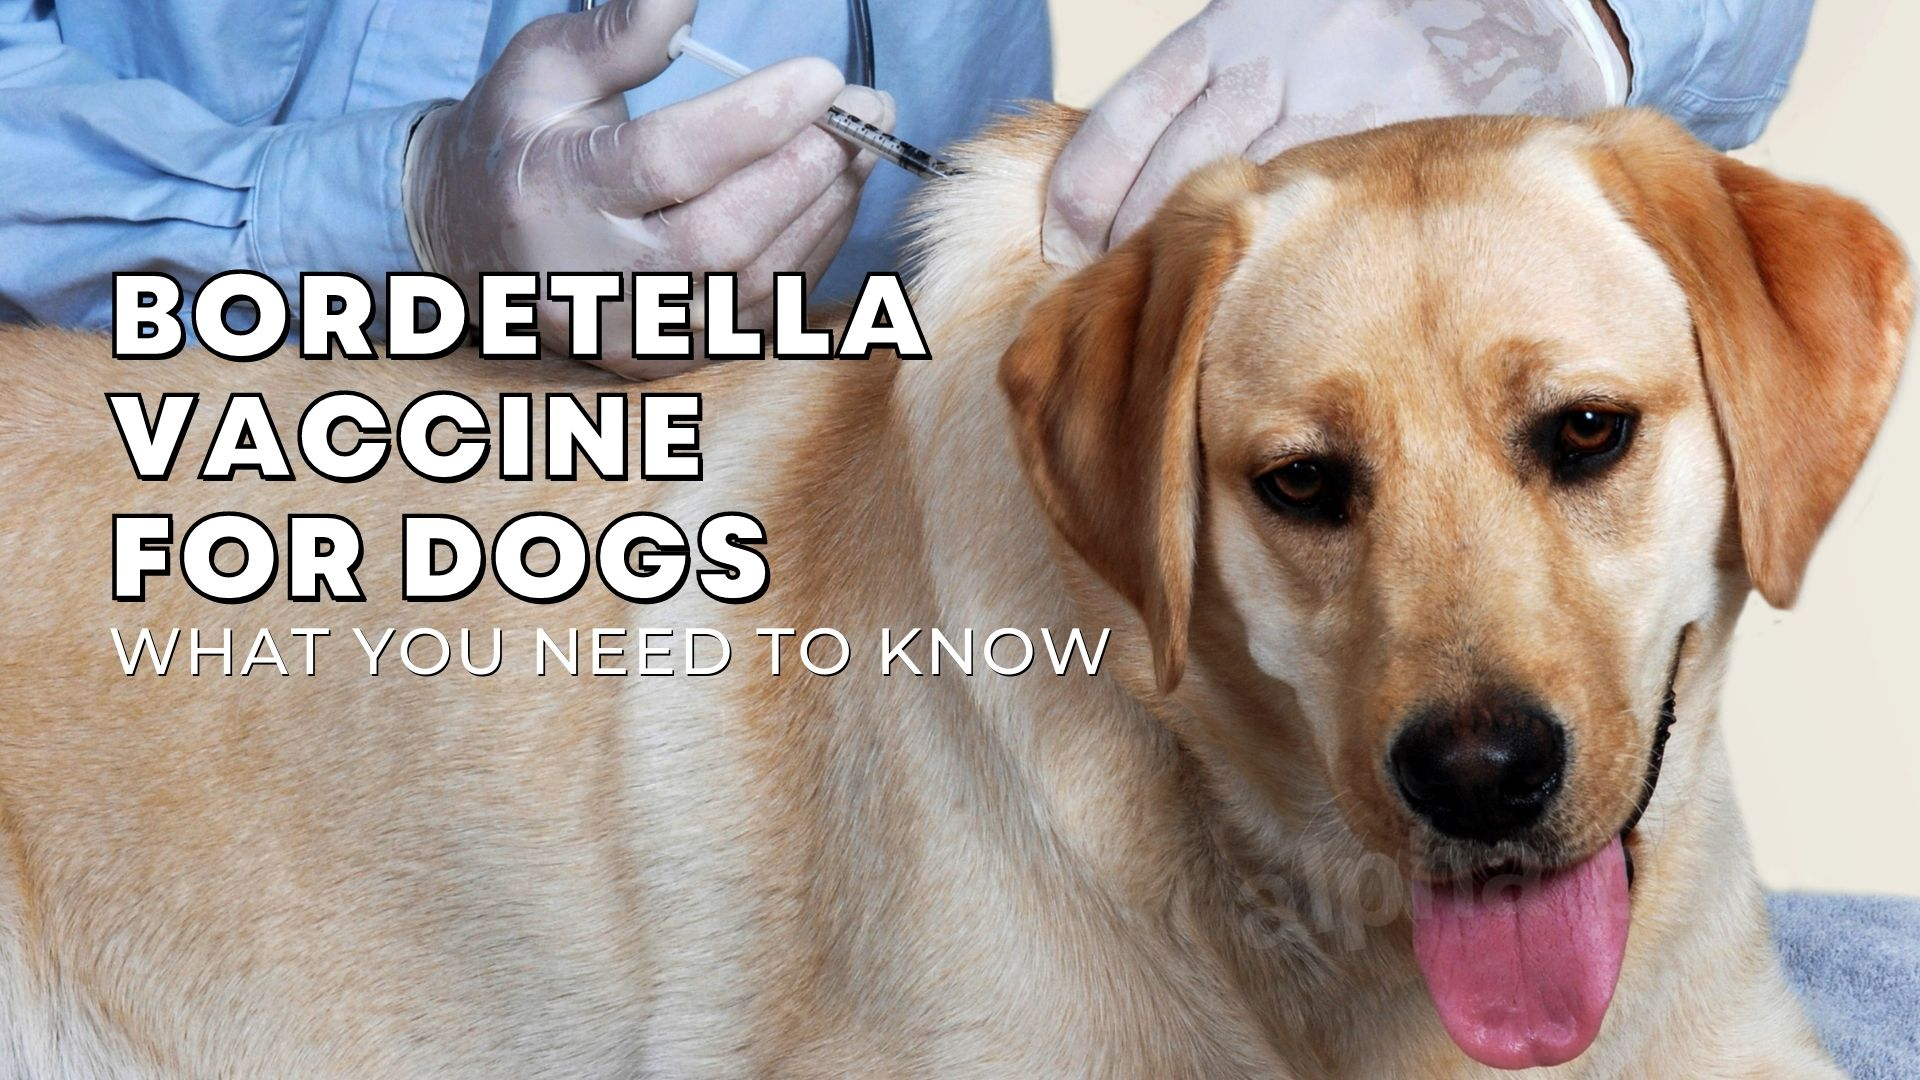 Bordetella Vaccine for Dogs: Here's What You Need to Know